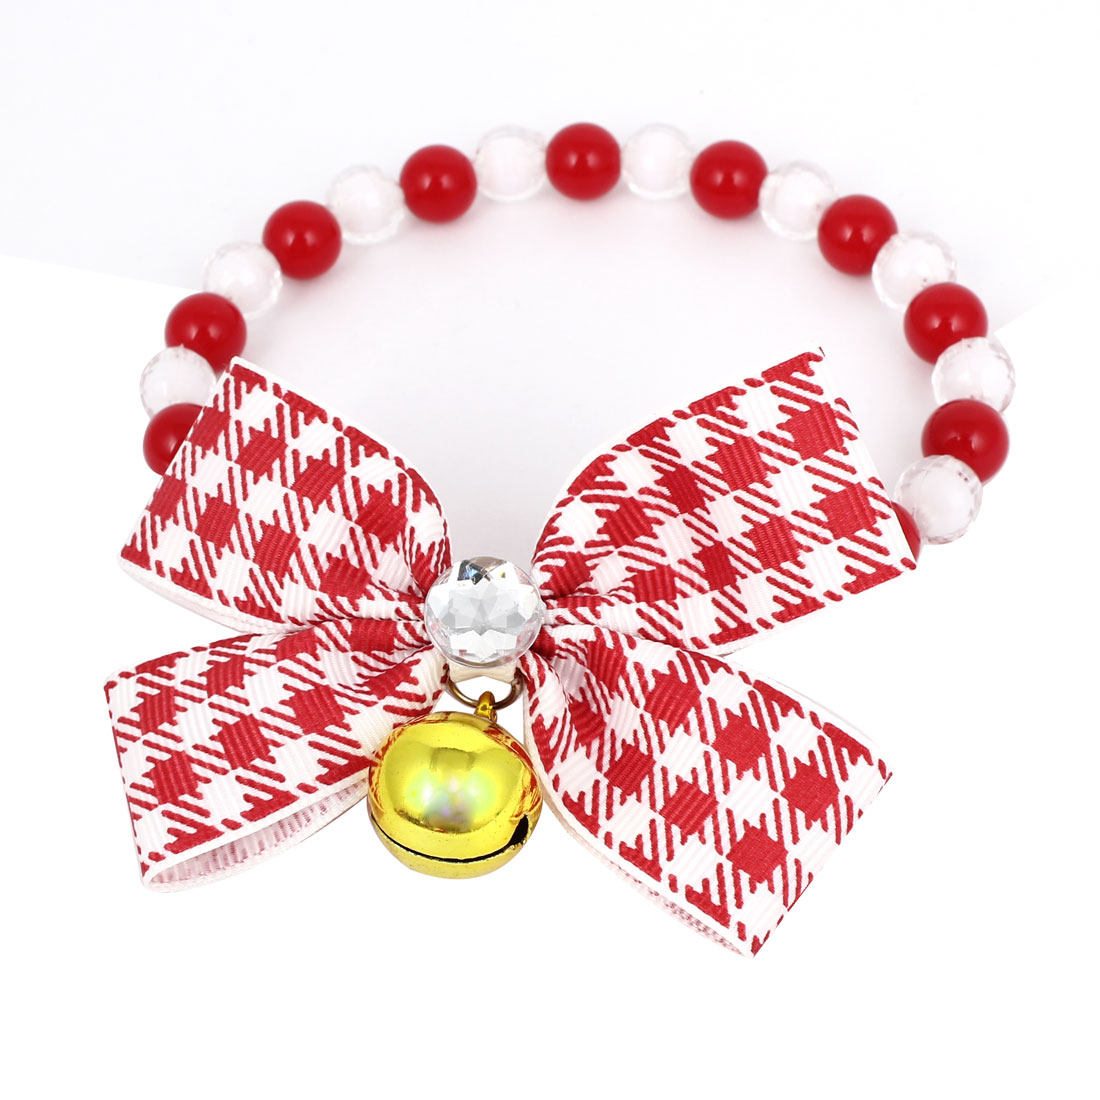 Metal Bell Pendant Bowtie Accent Pet Dog Plastic Beads Collar Necklace Red White XS